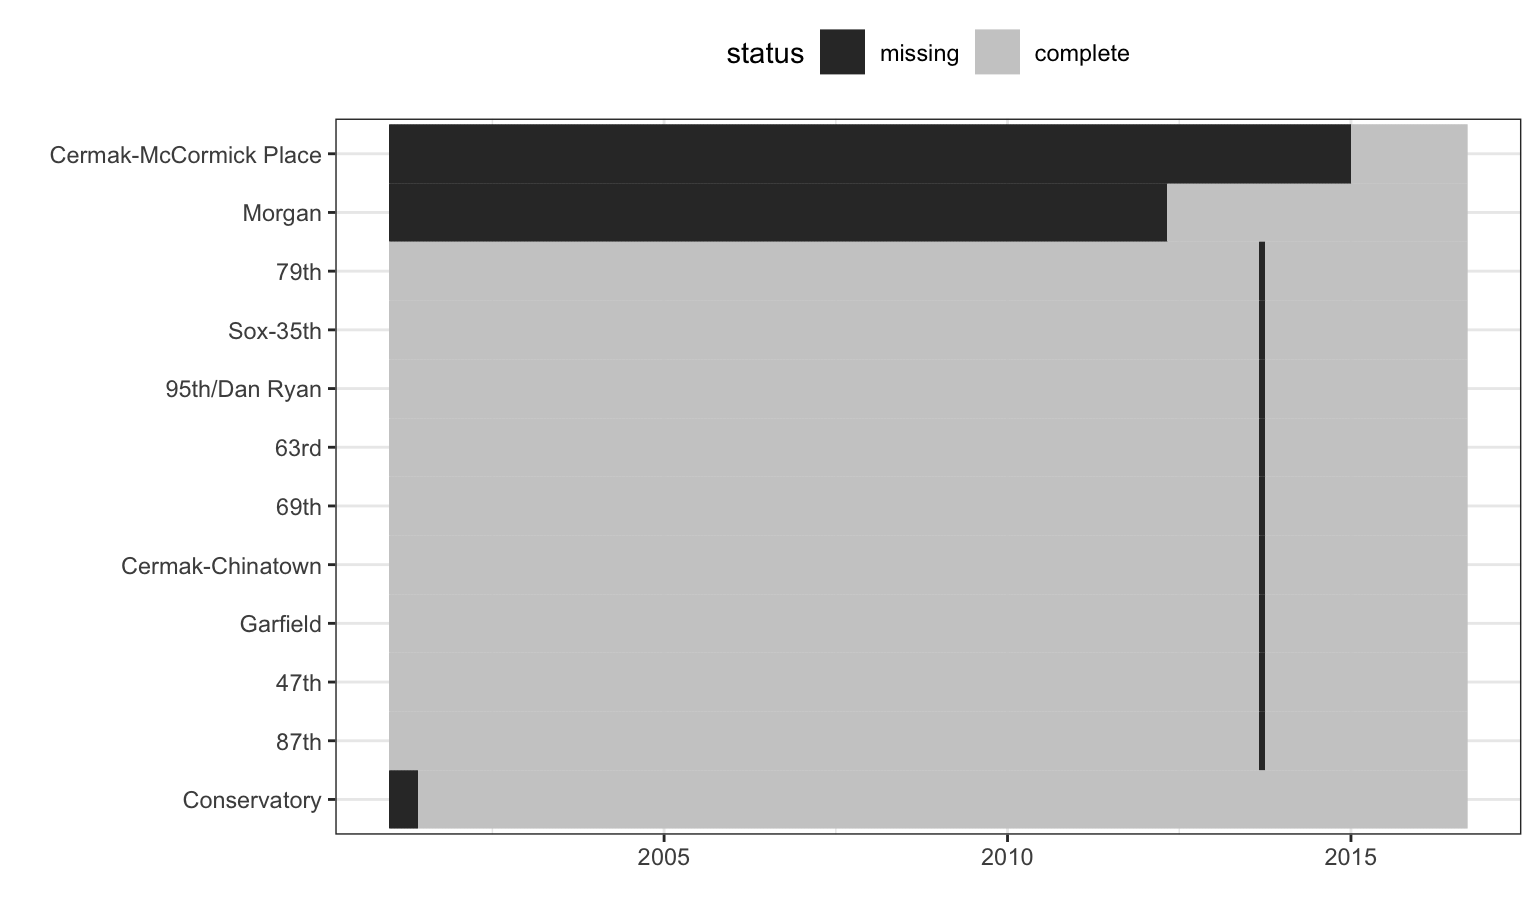 Missing data patterns for stations originally in the Chicago ridership data.